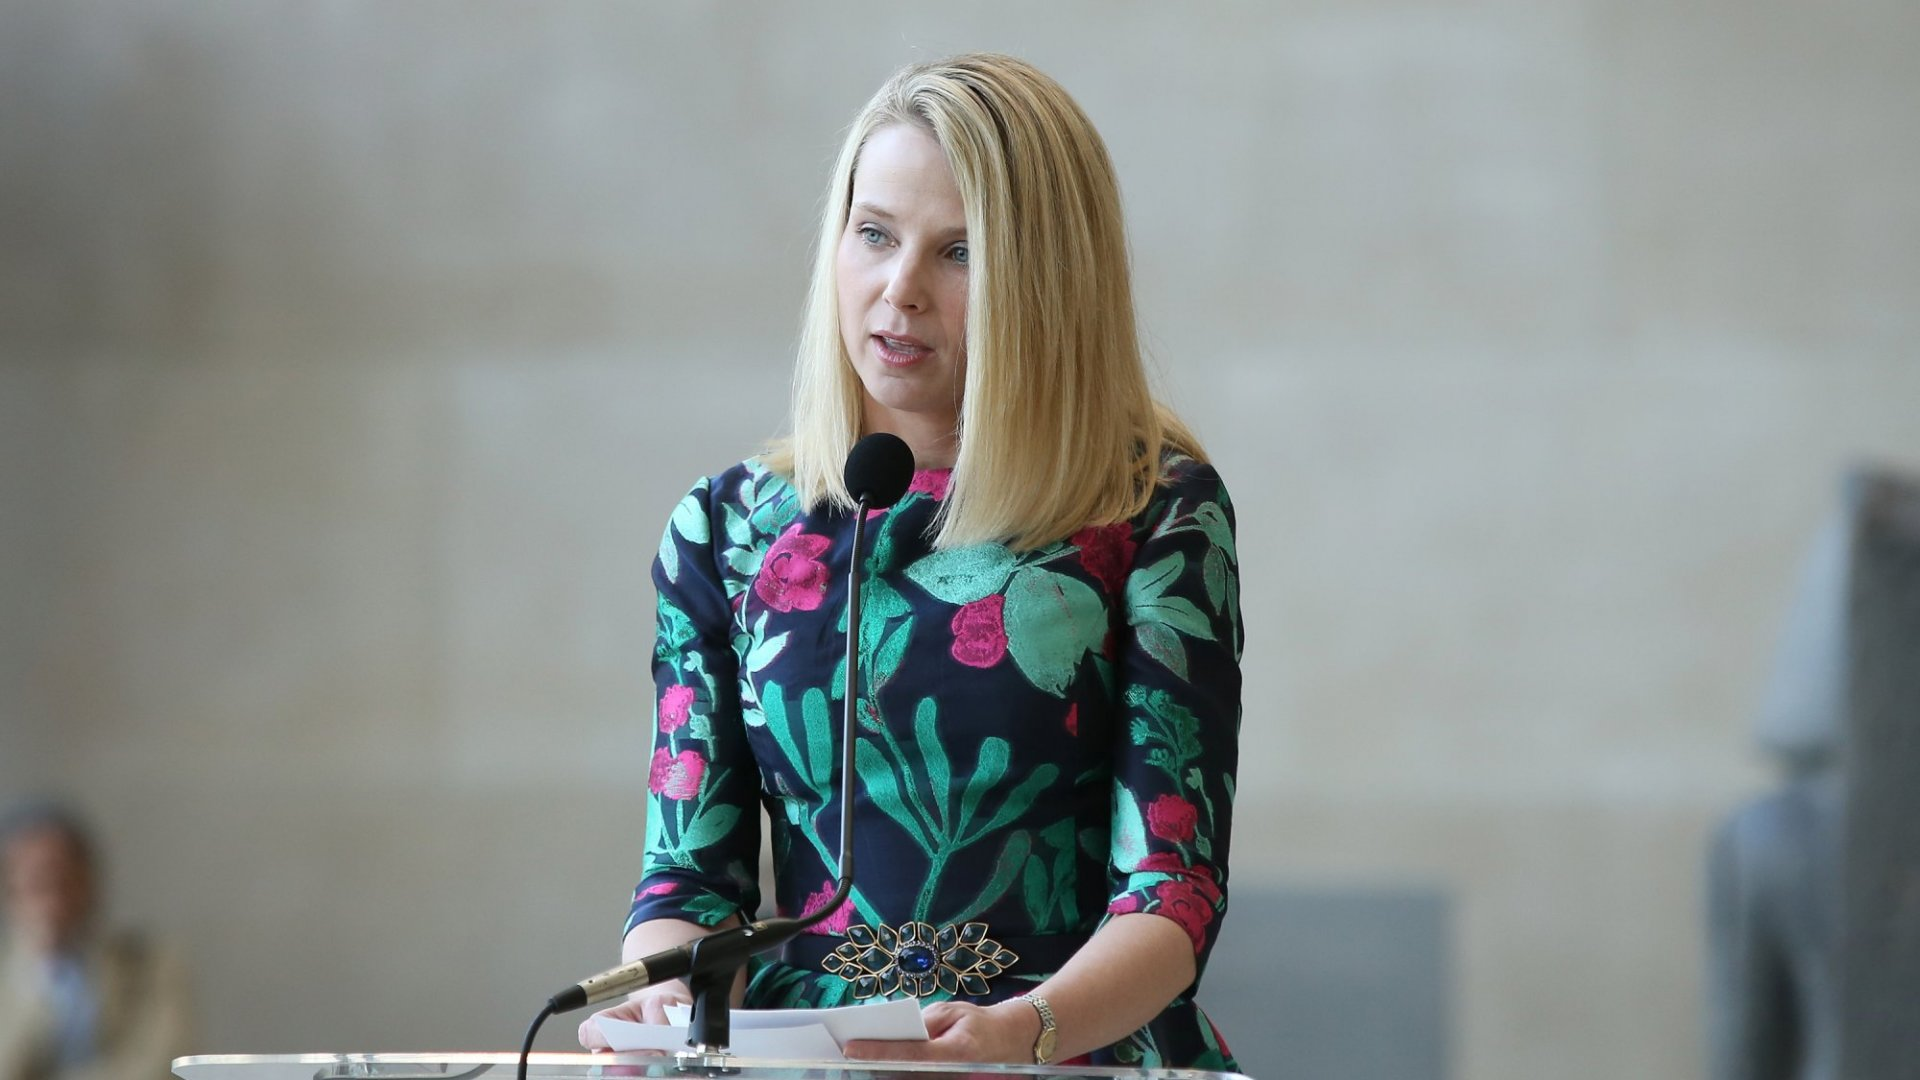 Women CEOs Like Marissa Mayer Are Often Set Up to Fall Off the 'Glass Cliff'